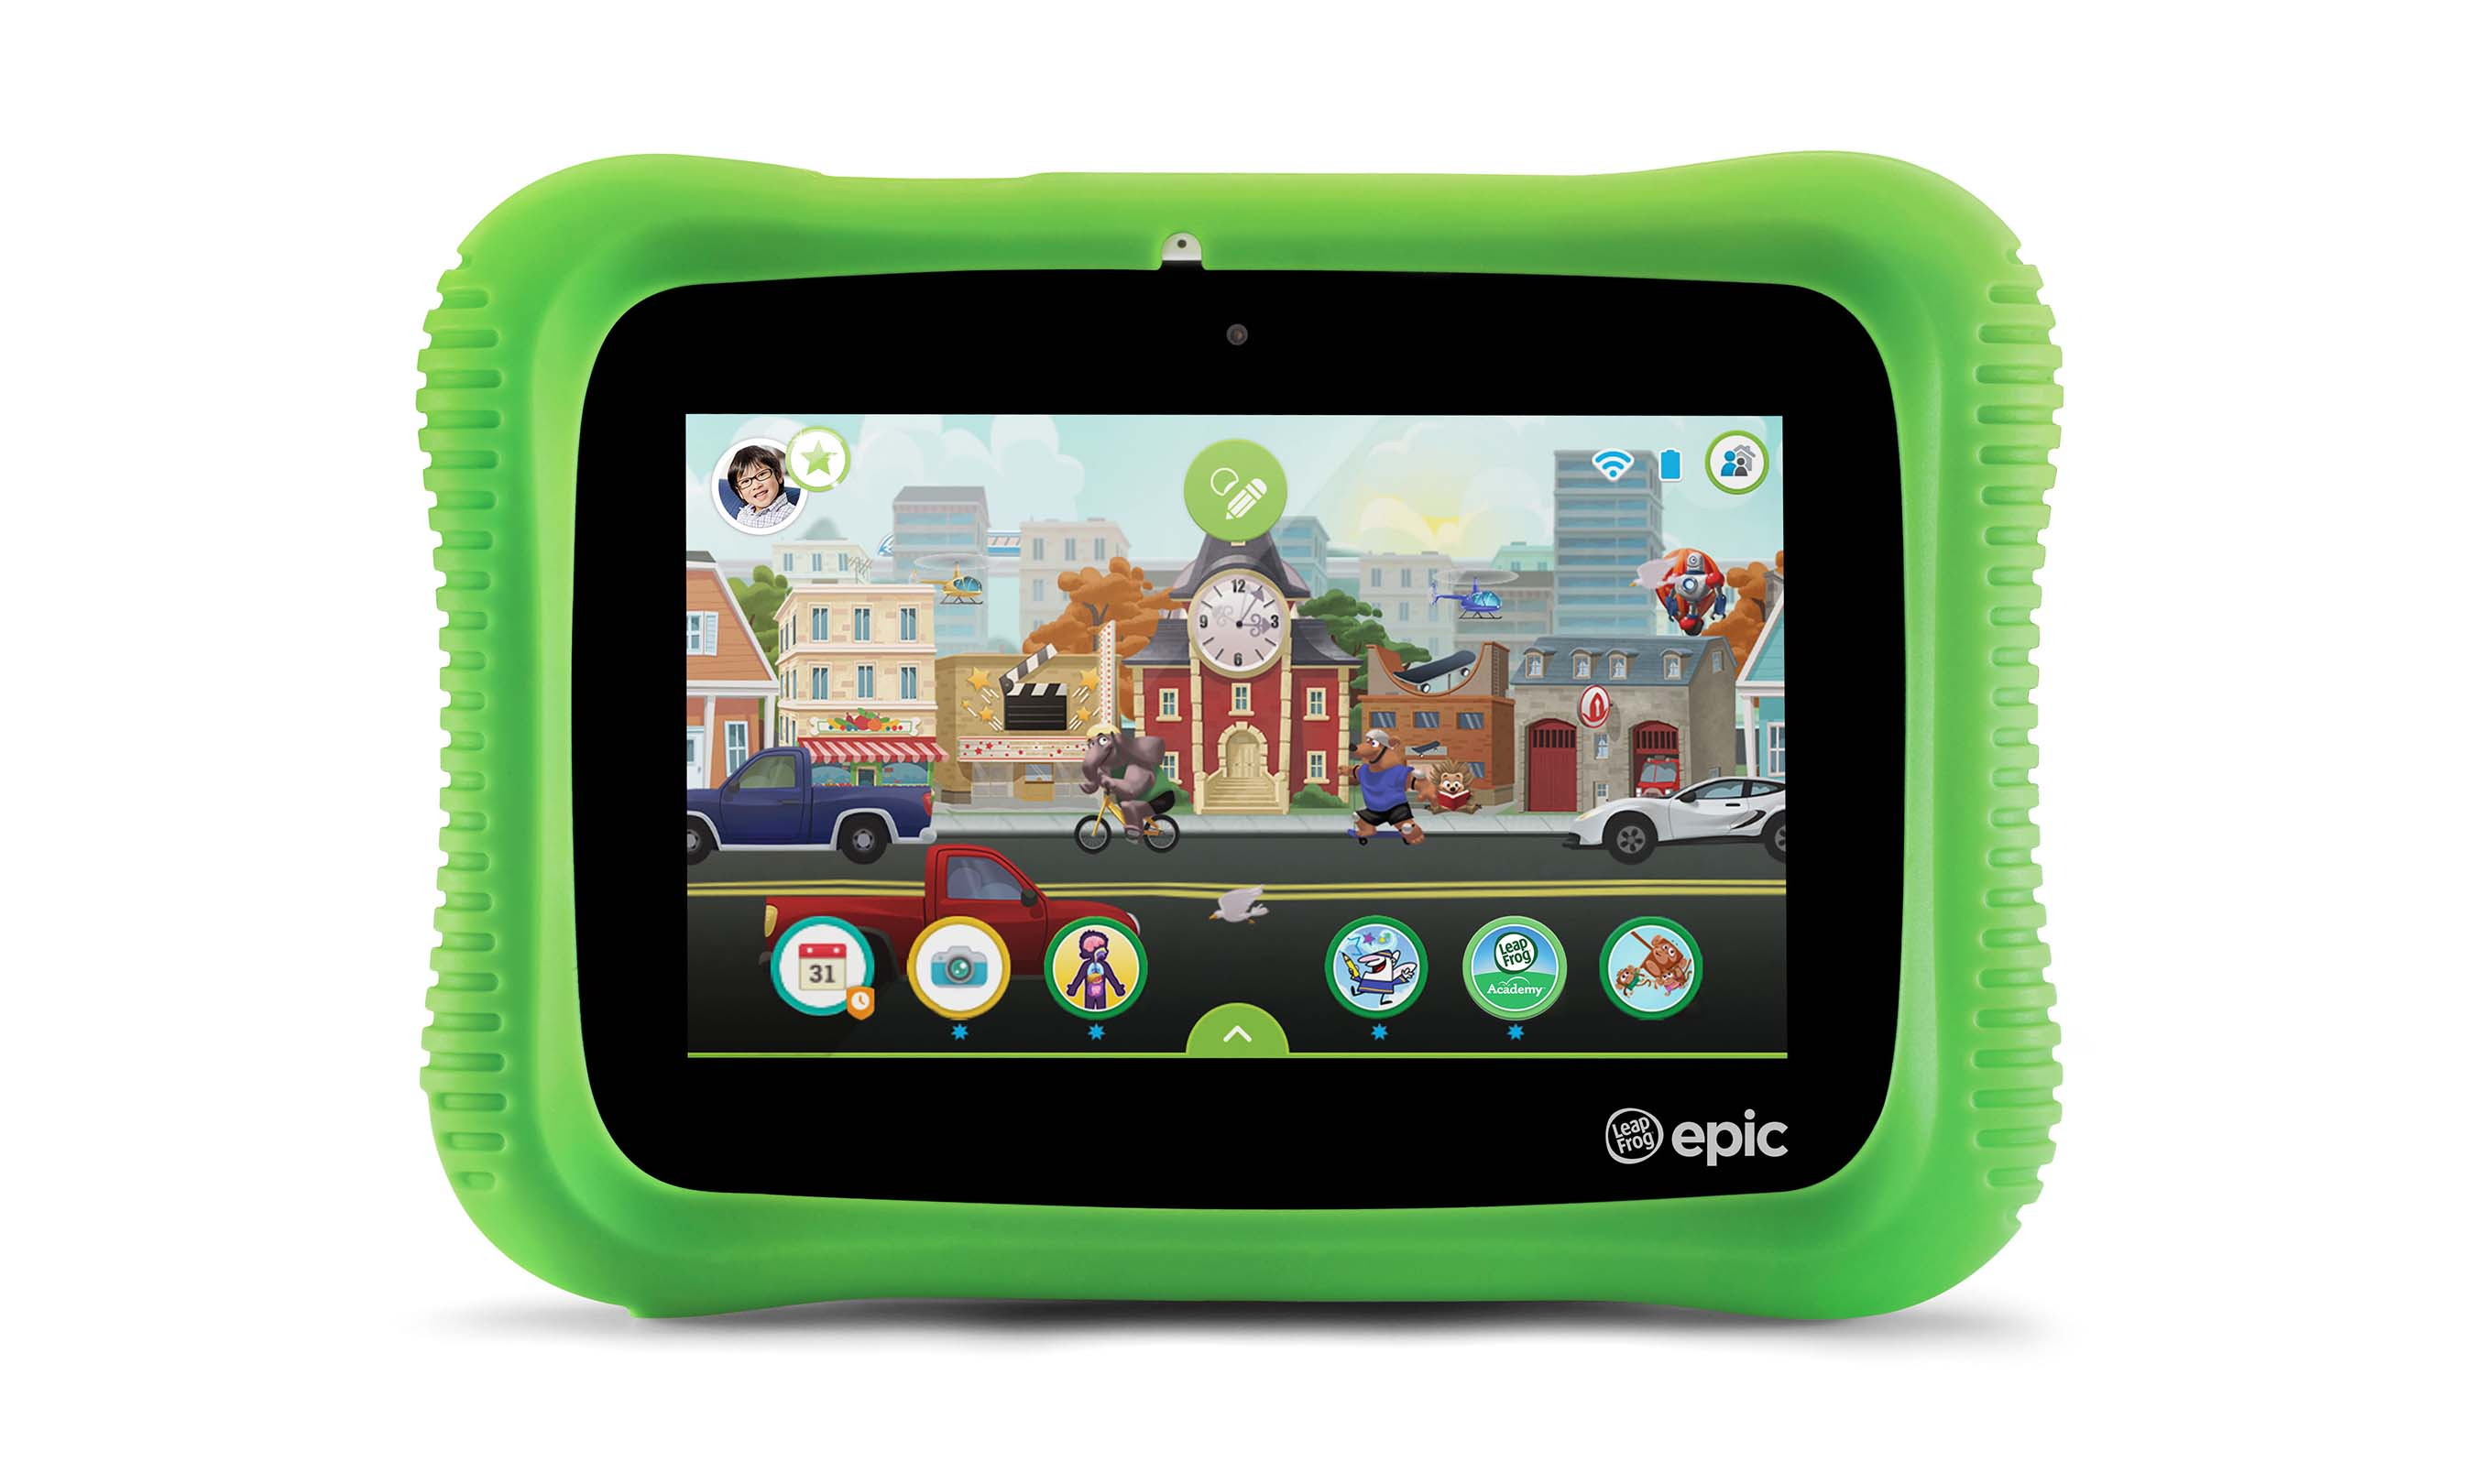 LeapFrog® Epic™ Academy Edition Combines the Company's Most Advanced Android-based Tablet with Its New Subscription Learning Program